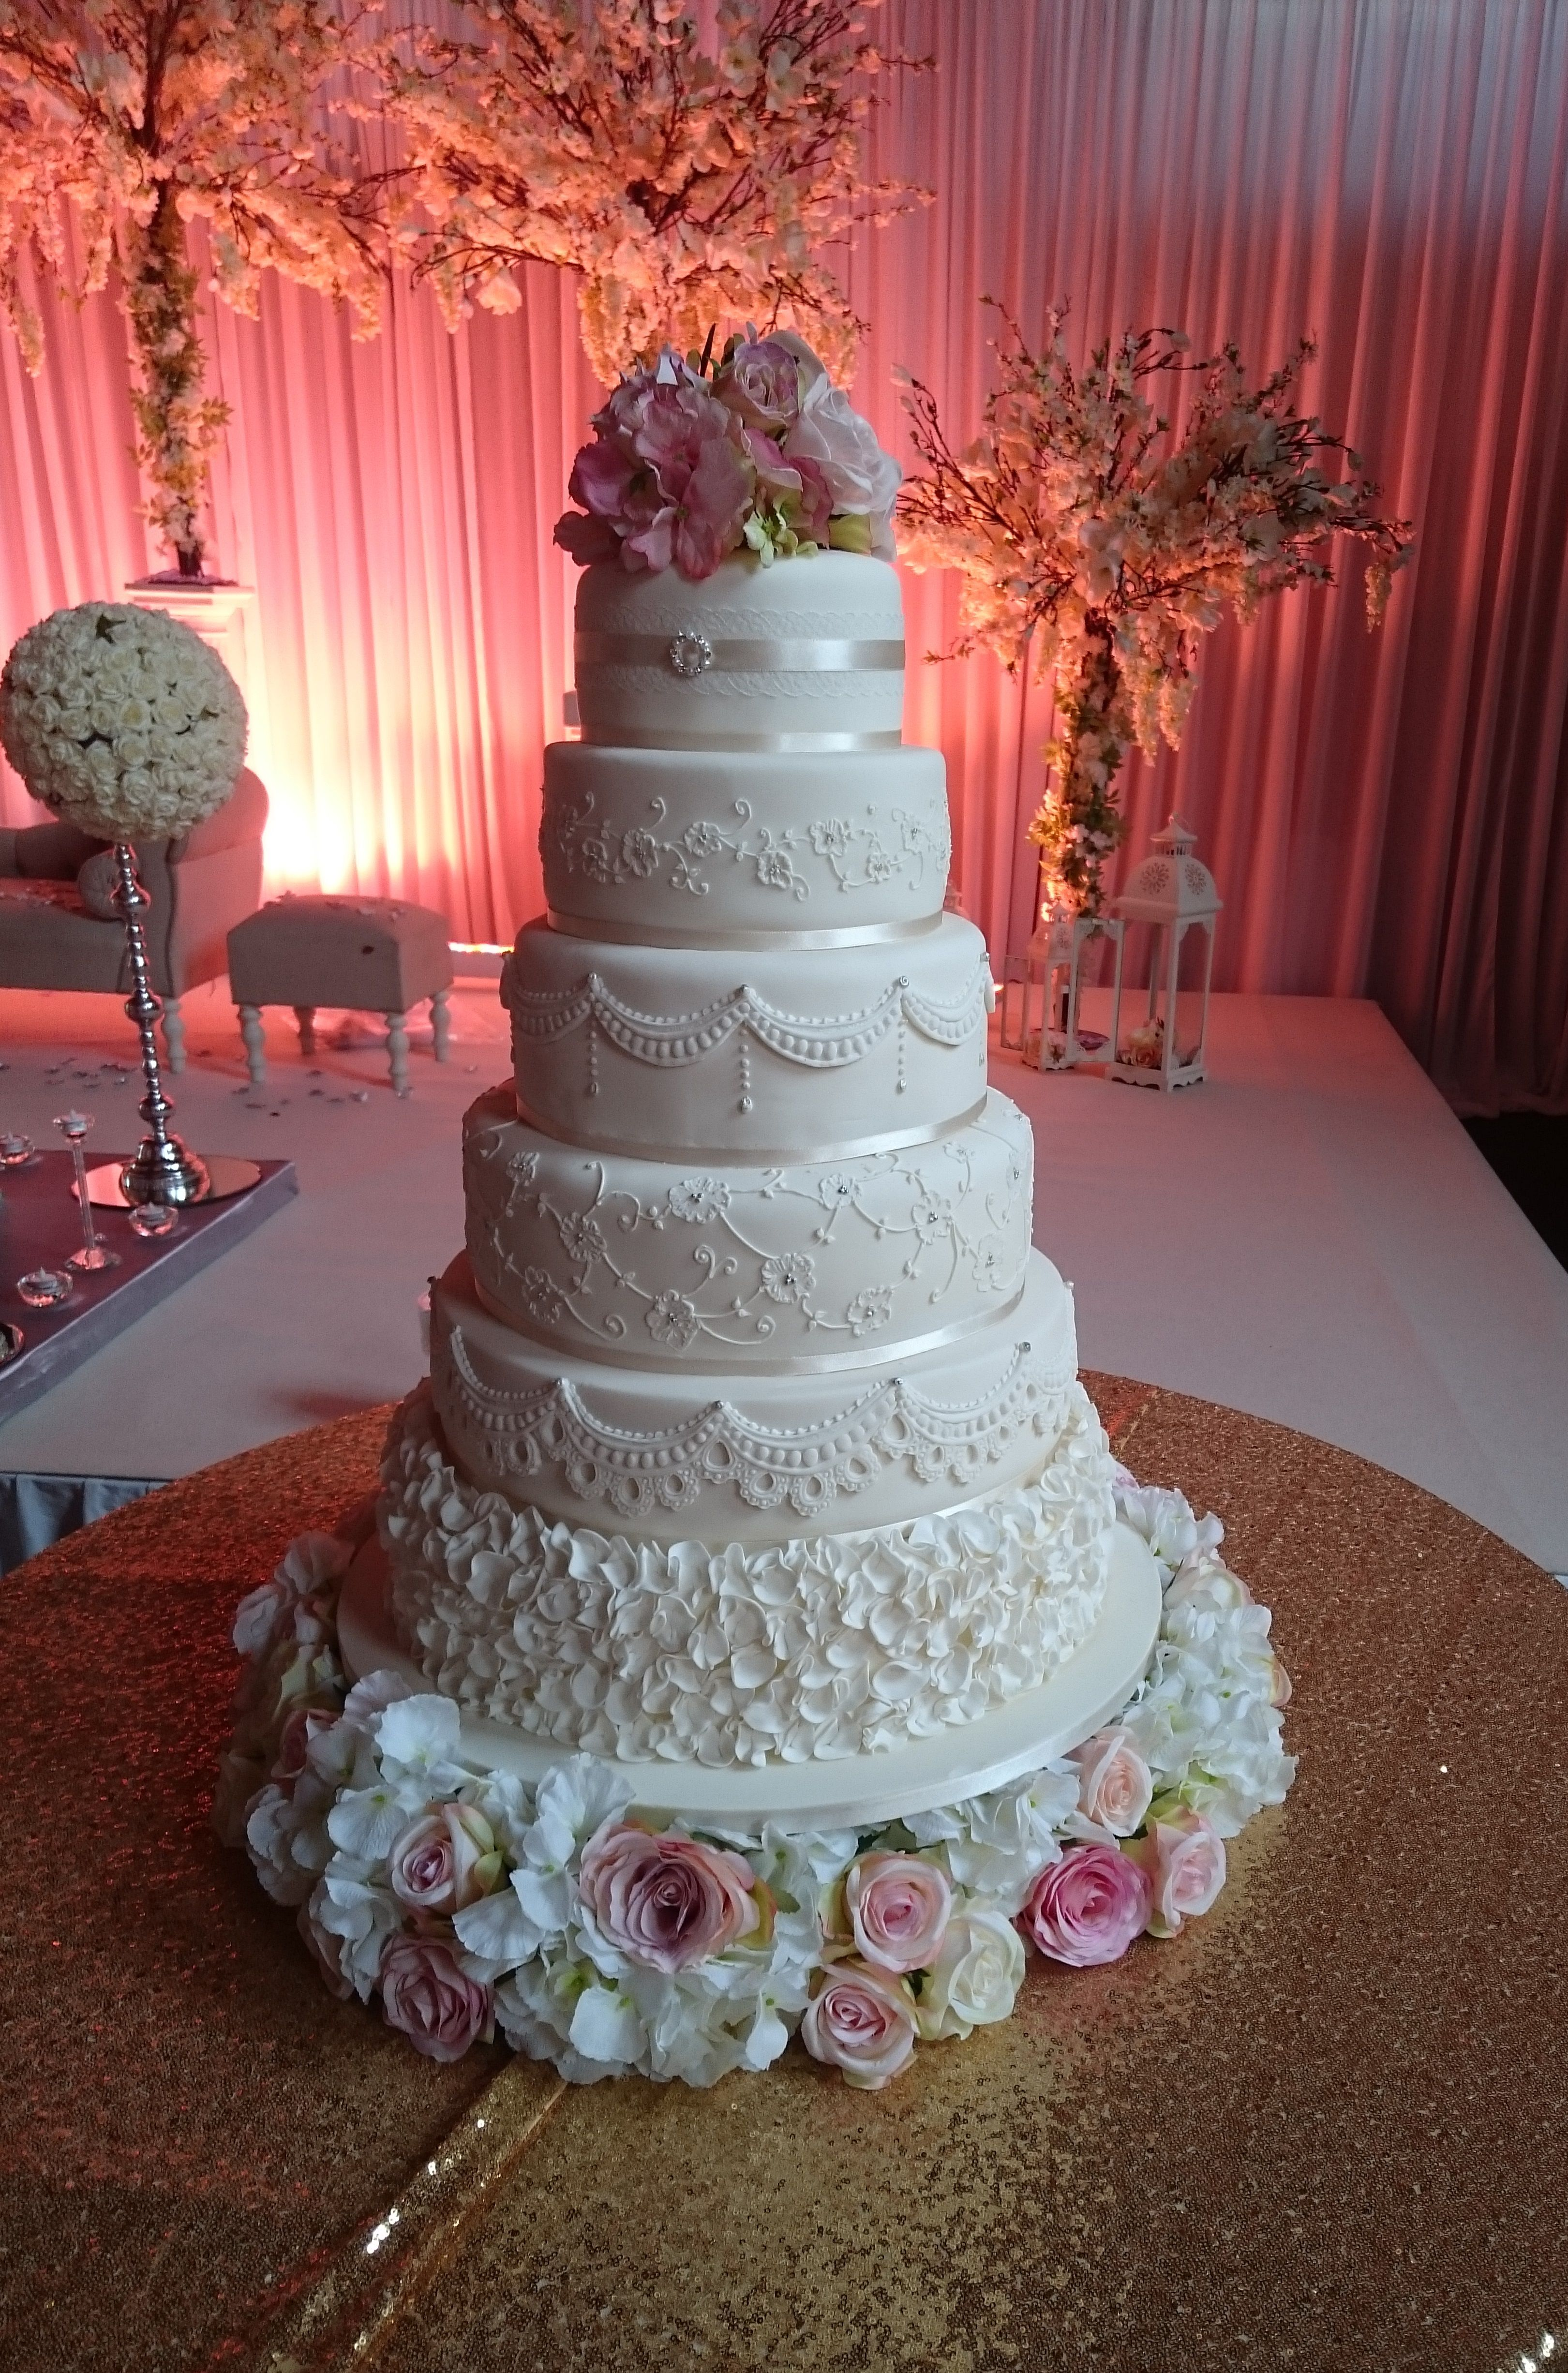 Roya, elegant 6 tiered cake decorated with lace and other effects ...